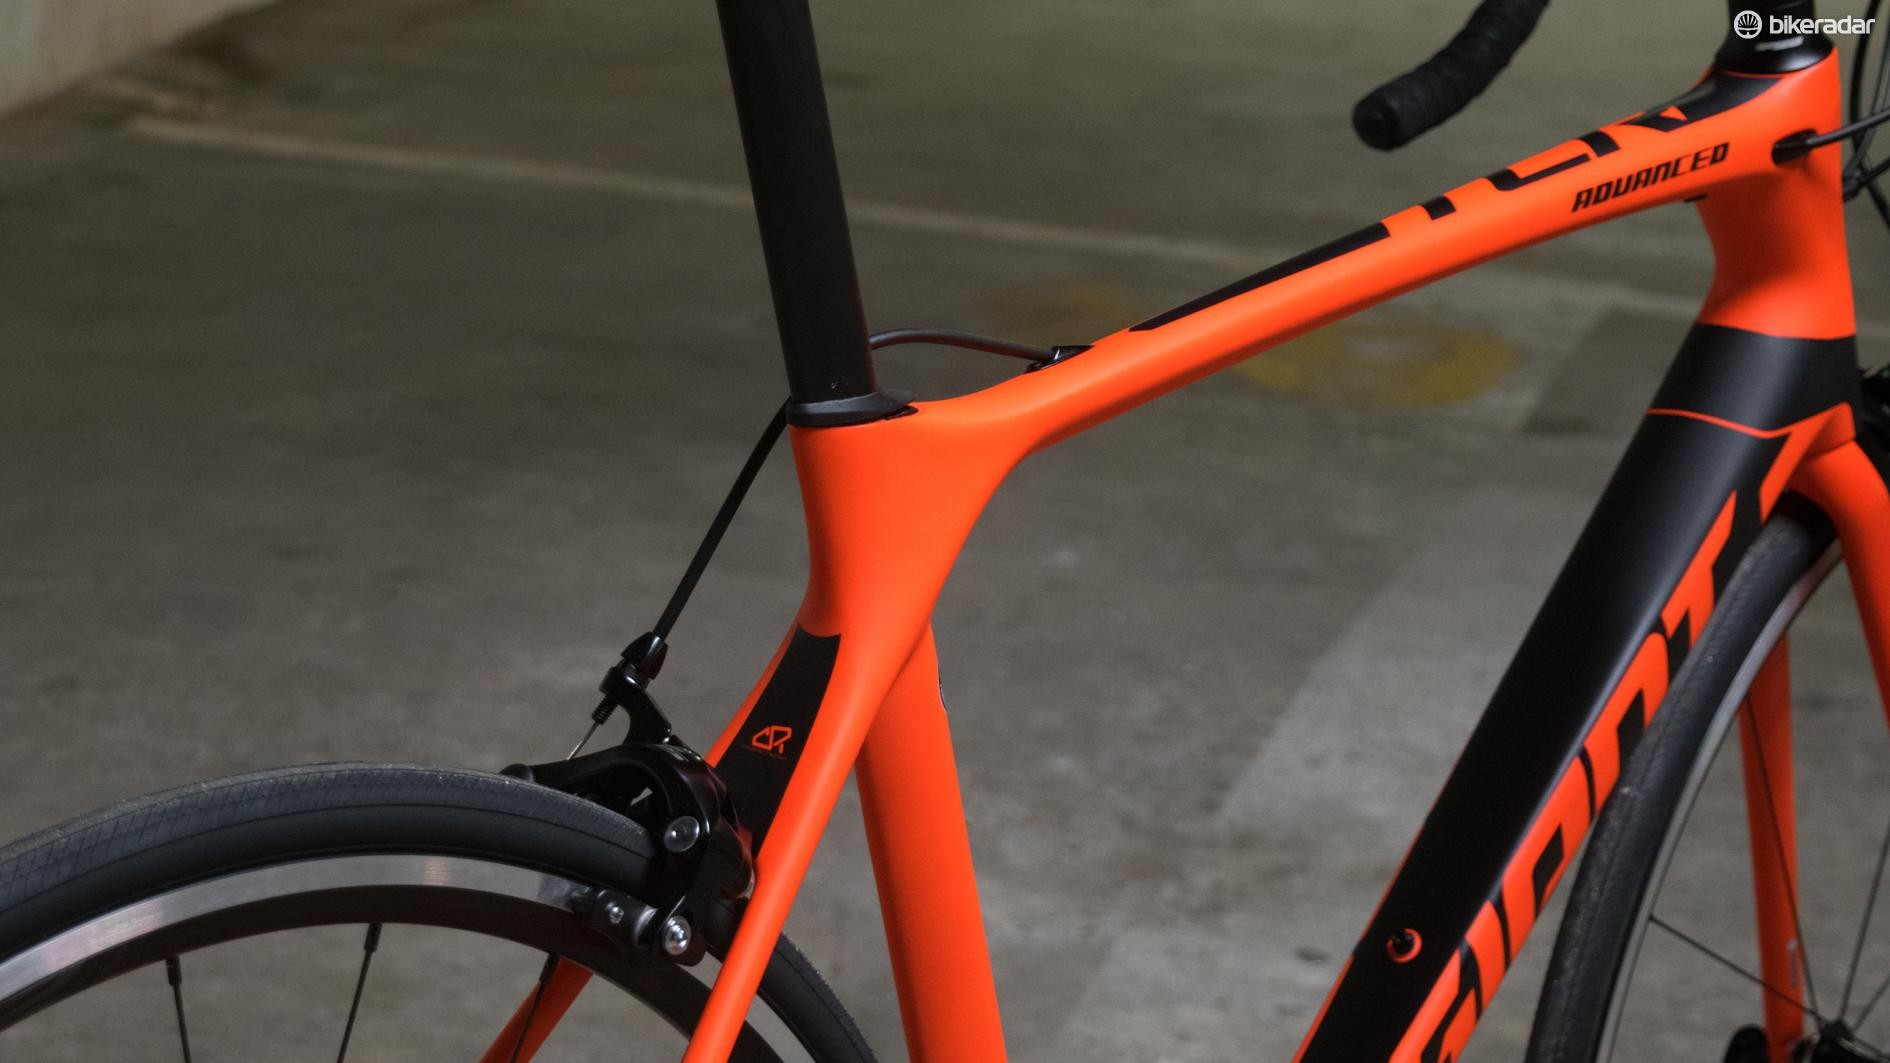 The TCR's ever-changing tube profiles make for a very striking bike